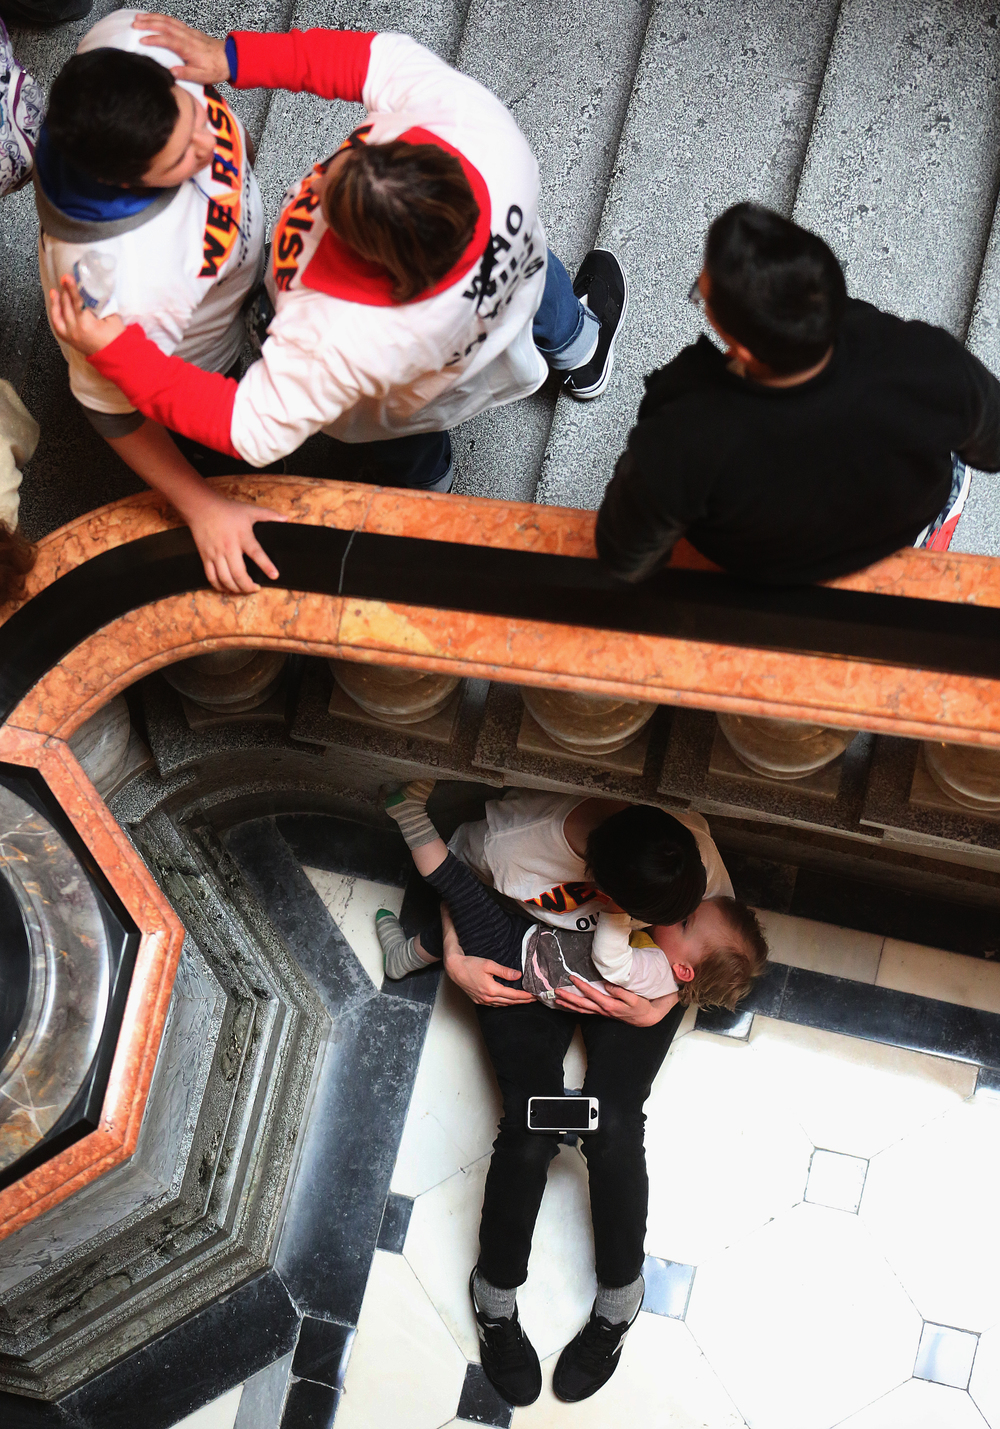 "A mother attending the rally nurses her child behind a bannister inside the State Capitol building on Wed. March 11, 2015. As part of ""We Rise"", a national day of action targeting state budget cuts, several thousand people from faith, community and labor organizations including adults, children and clergy affected by Gov. Bruce Rauner's proposed cuts gathered in Springfield to protest. The event began with a rally inside the Capitol building followed by a march to the governor's mansion where a mock ""funeral"" for the ""99%"" took place. David Spencer/The State Journal-Register"